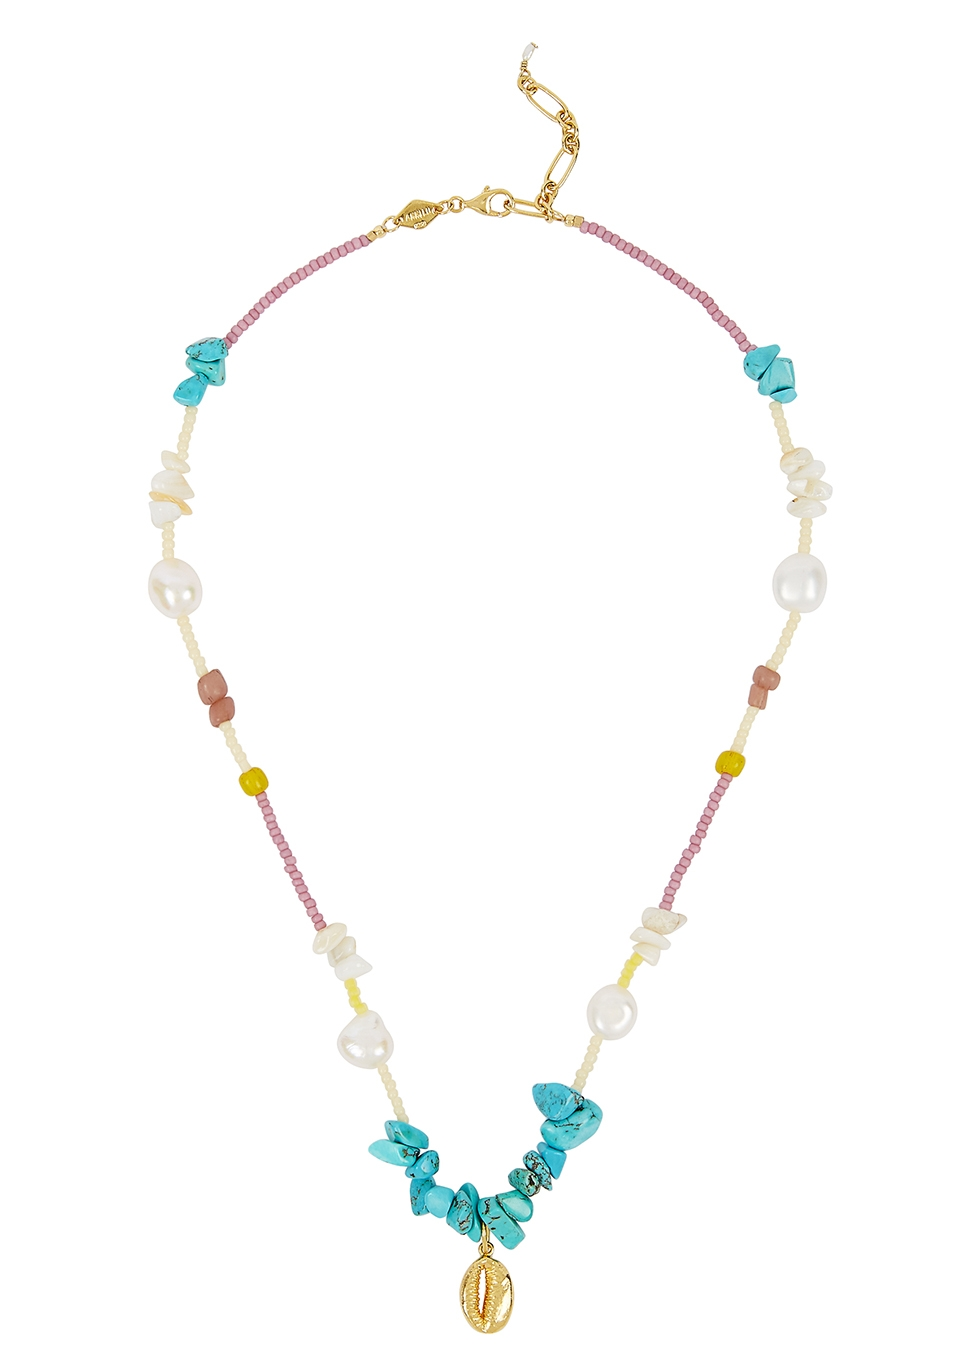 Bounty 18kt gold-plated necklace - ANNI LU